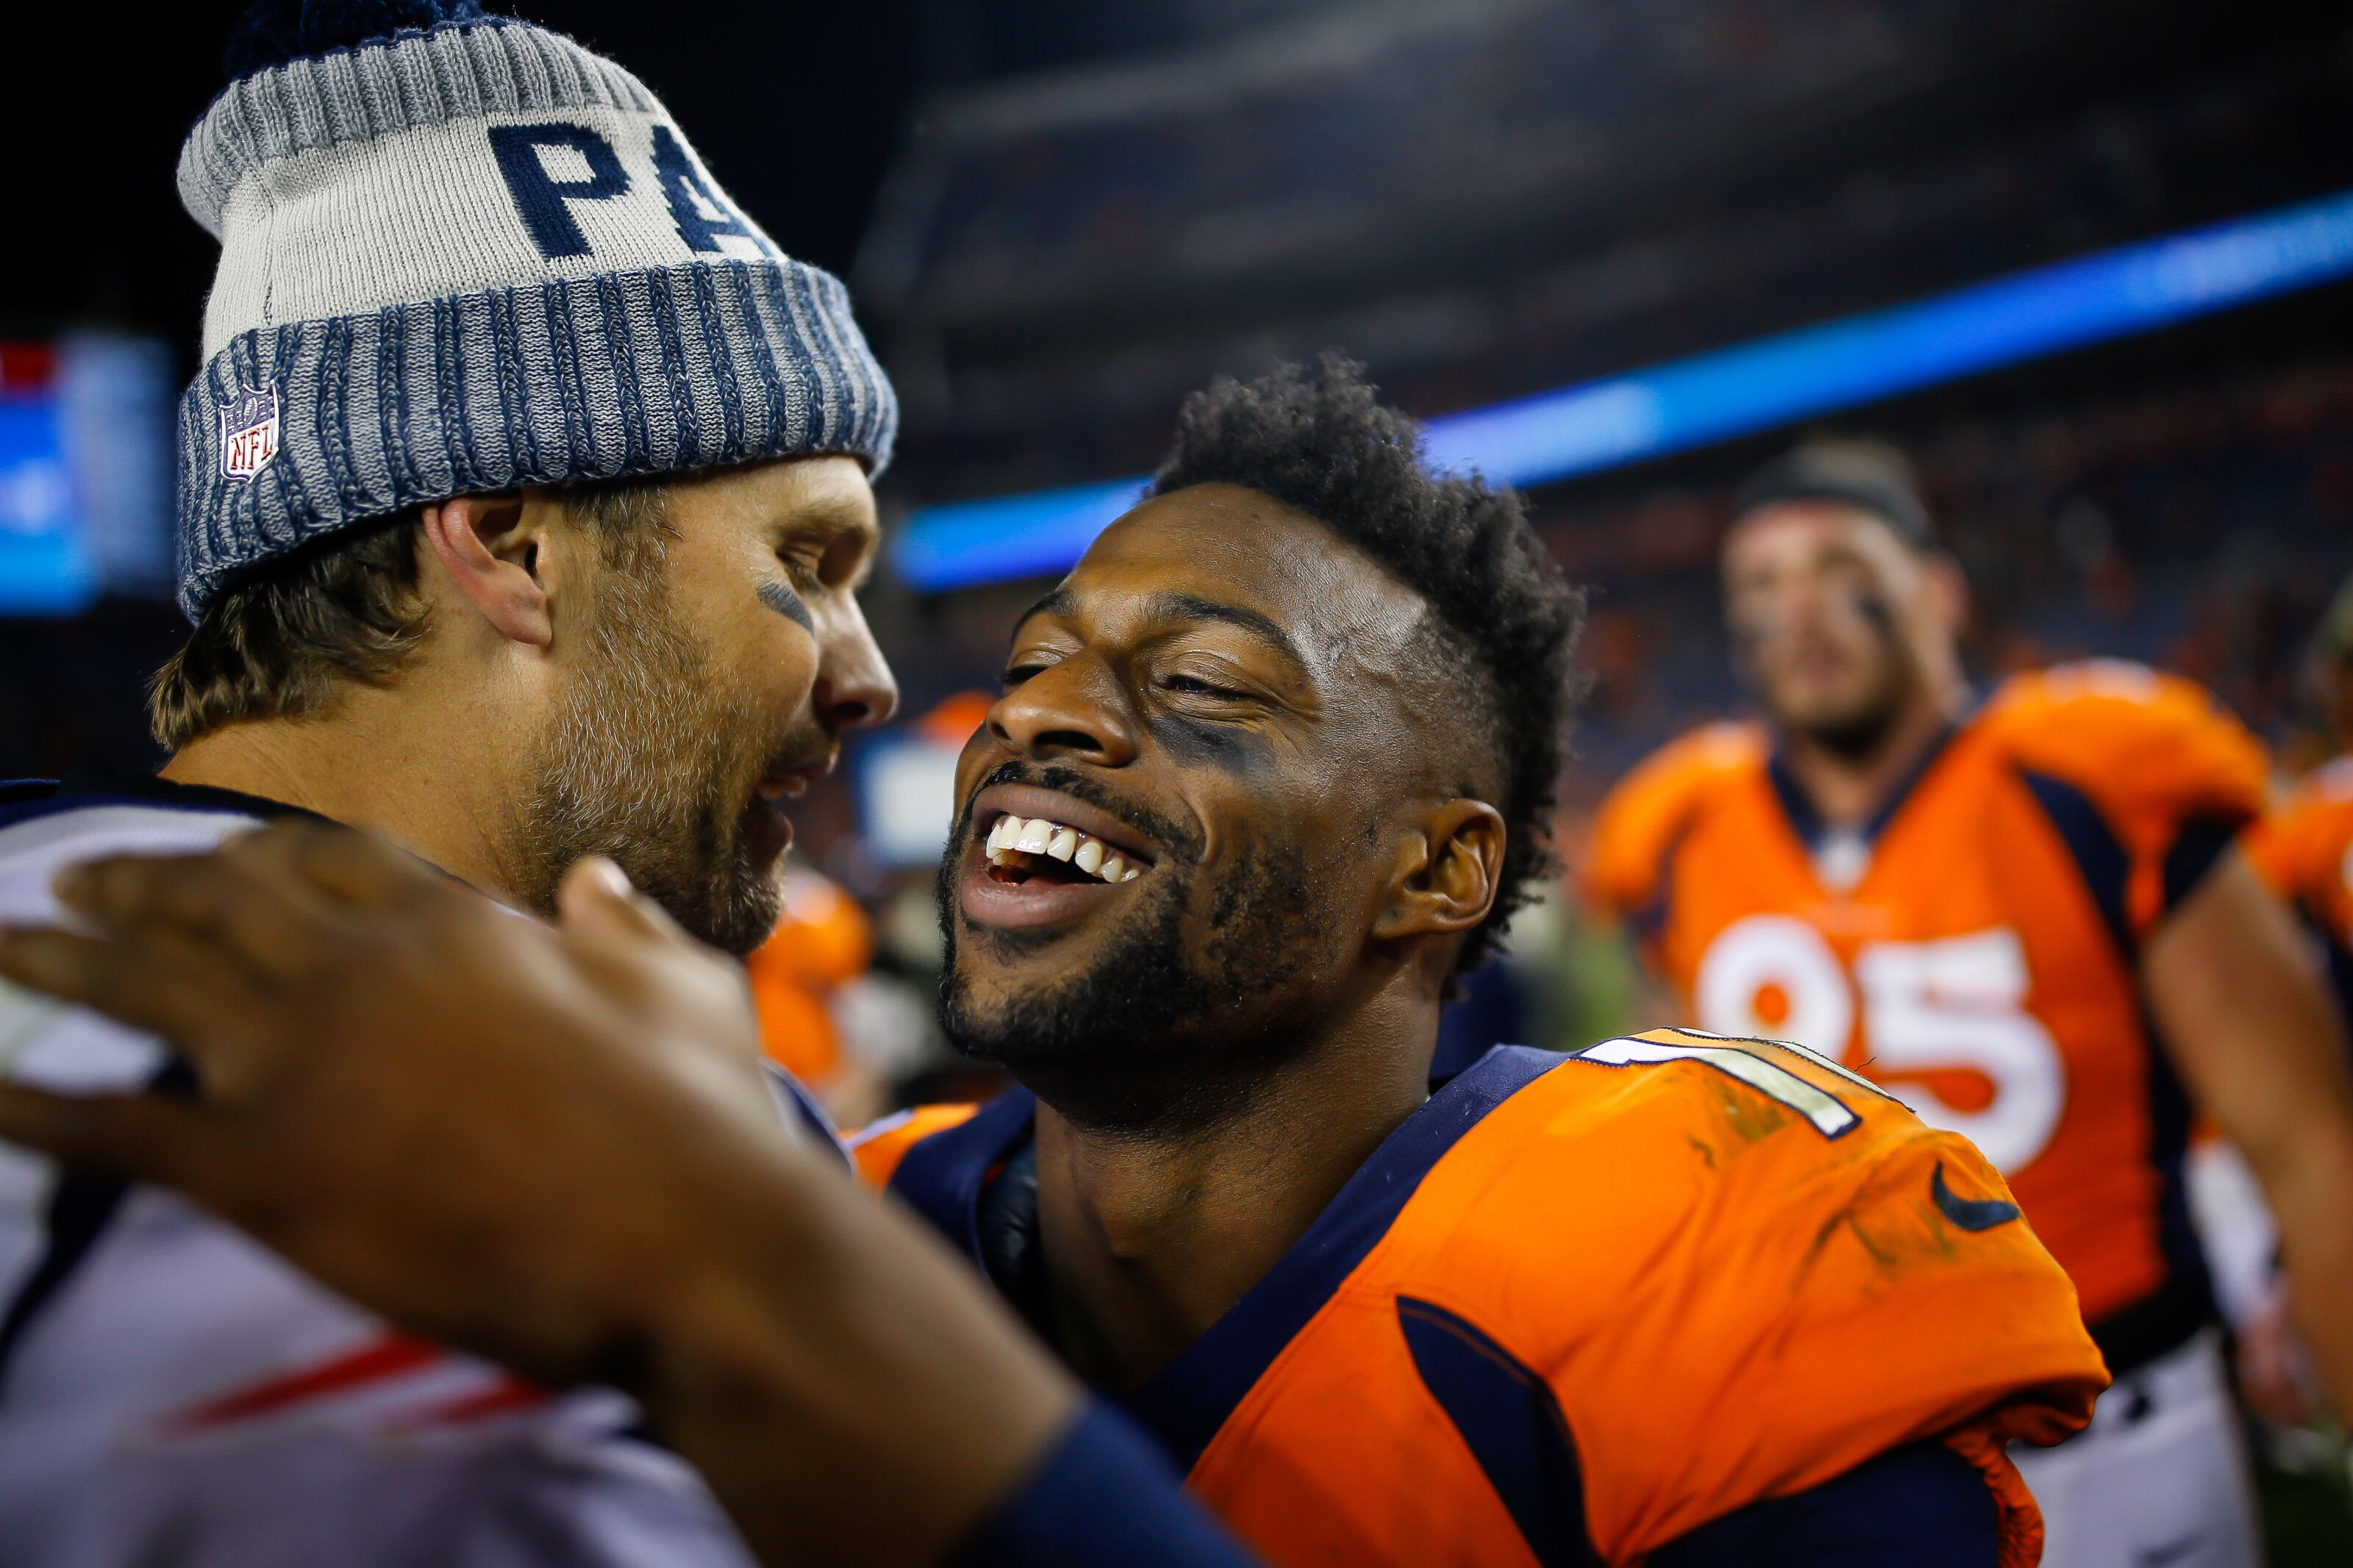 Chiefs/Broncos game on TNF offers plenty of intrigue for Patriots